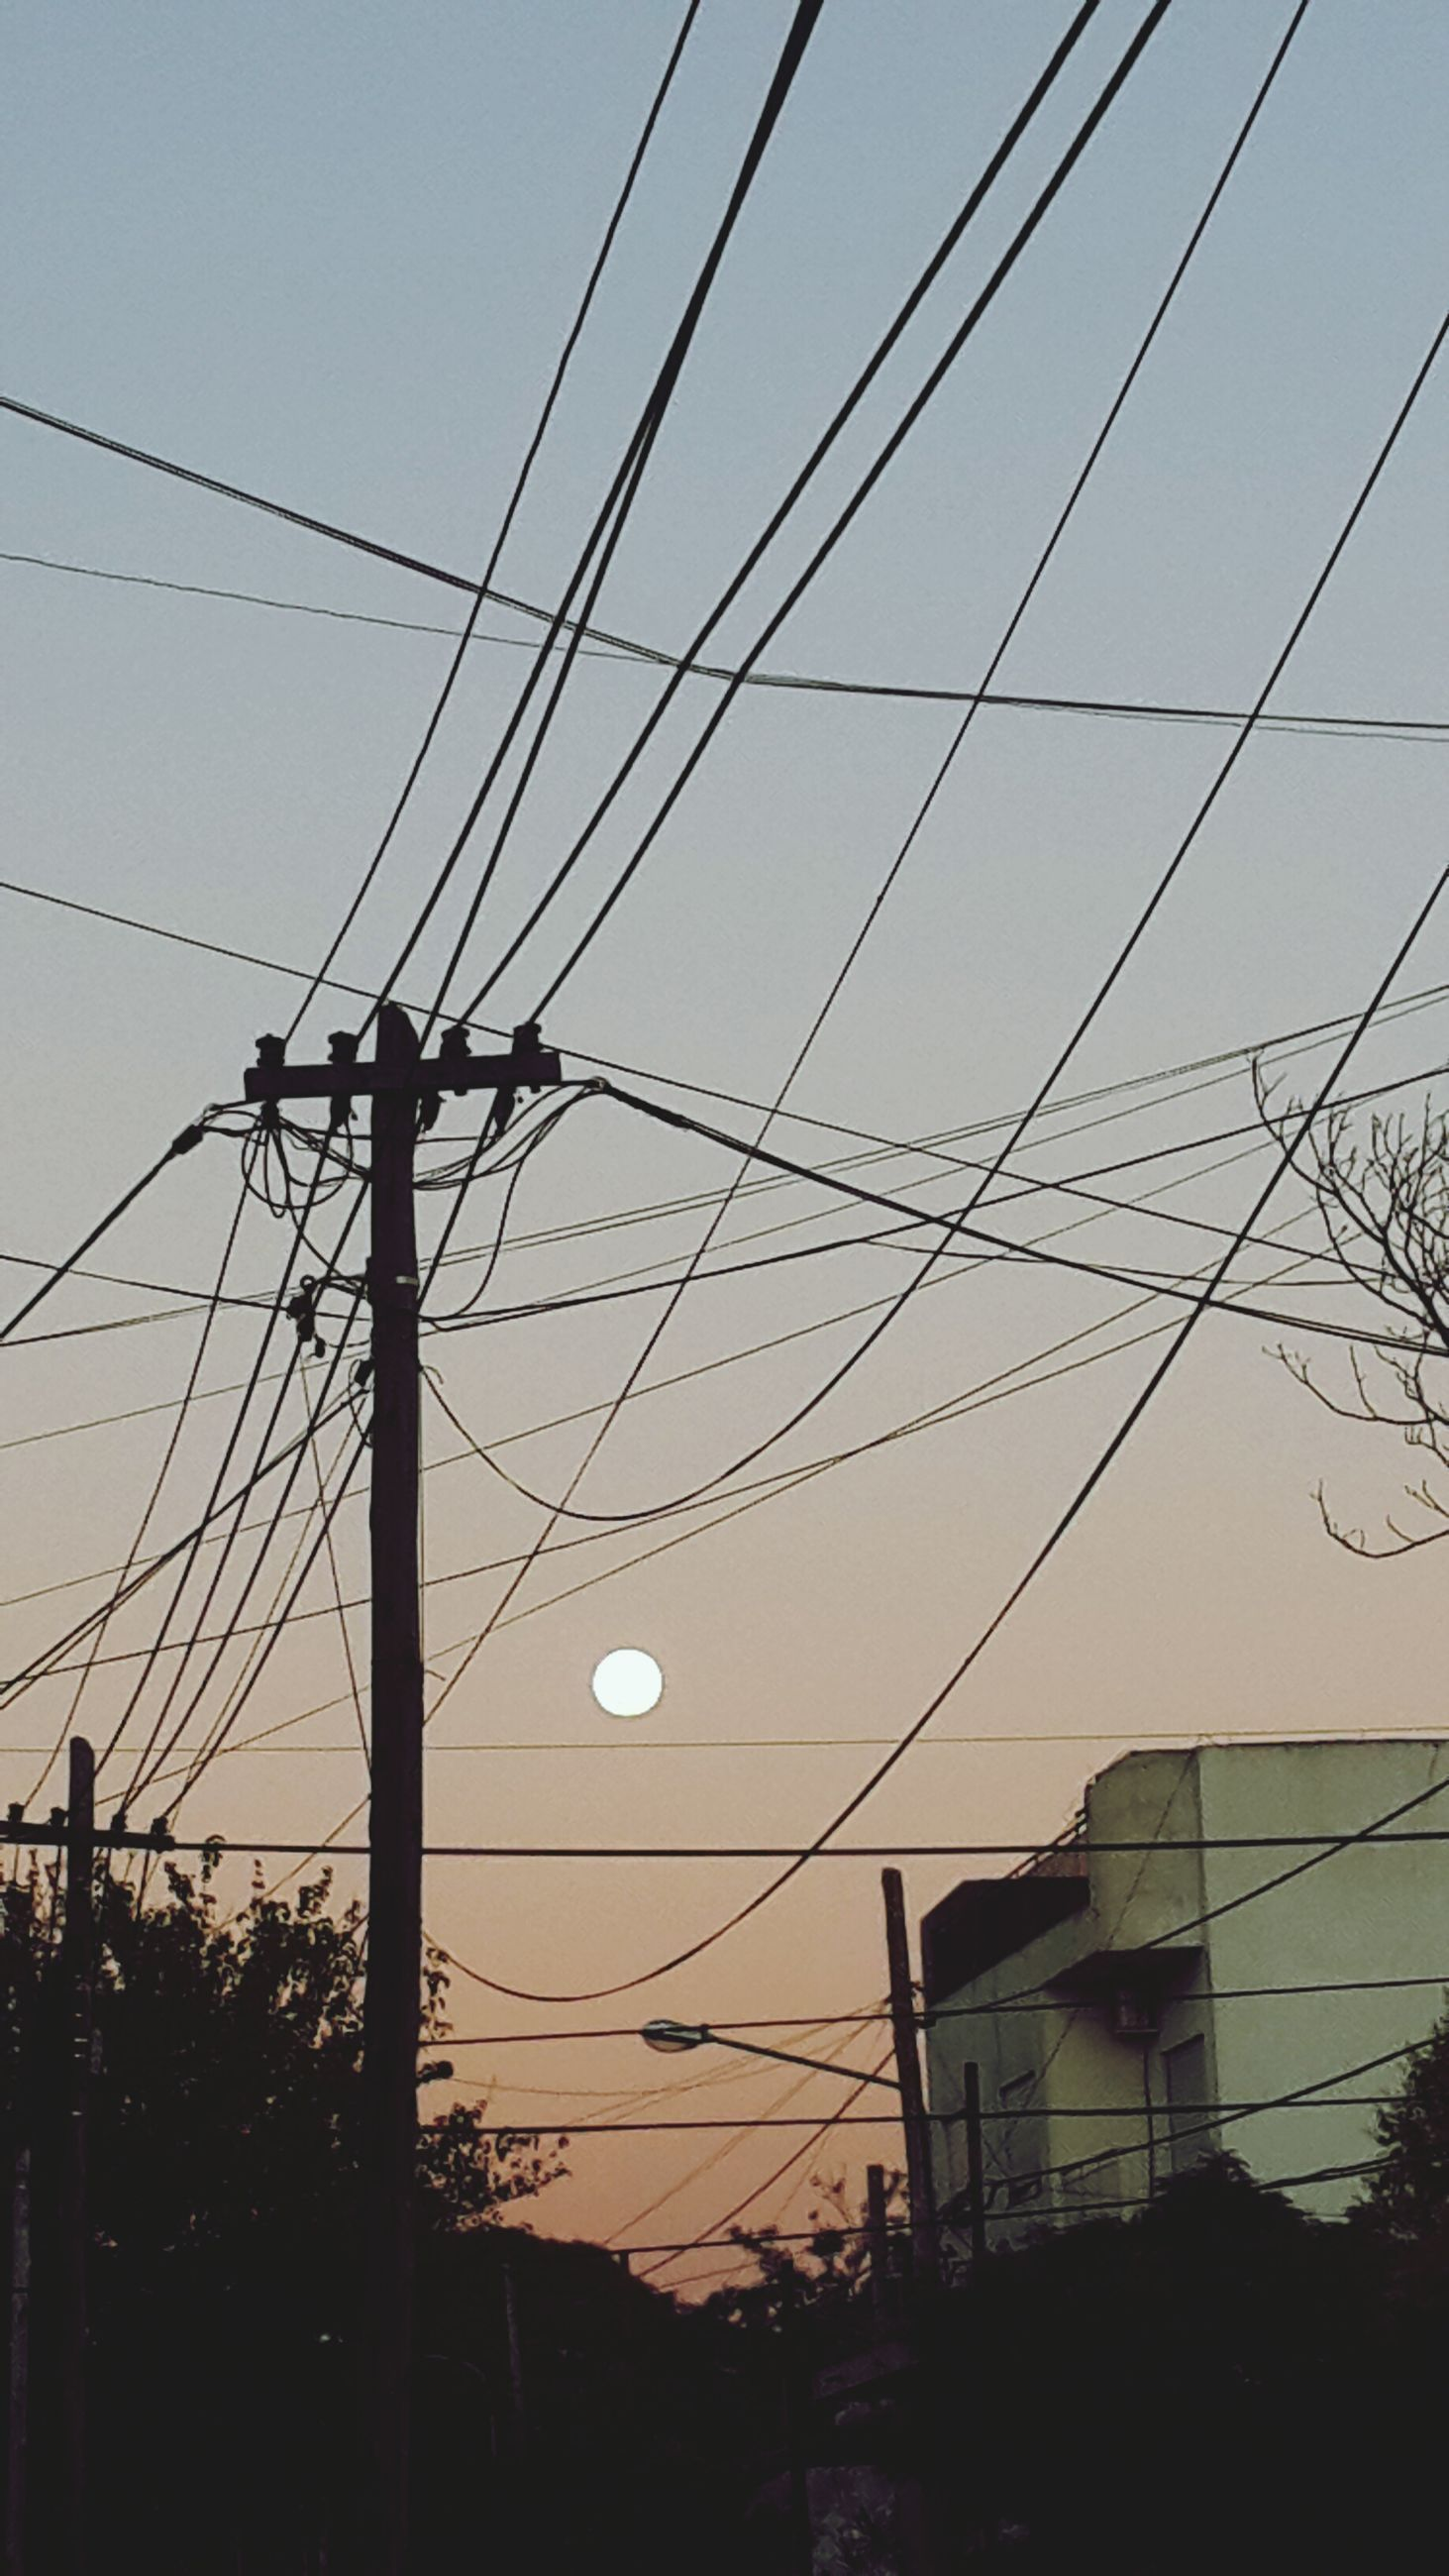 power line, electricity, electricity pylon, cable, low angle view, power supply, built structure, architecture, building exterior, silhouette, fuel and power generation, connection, sky, technology, power cable, sunset, house, street light, clear sky, dusk